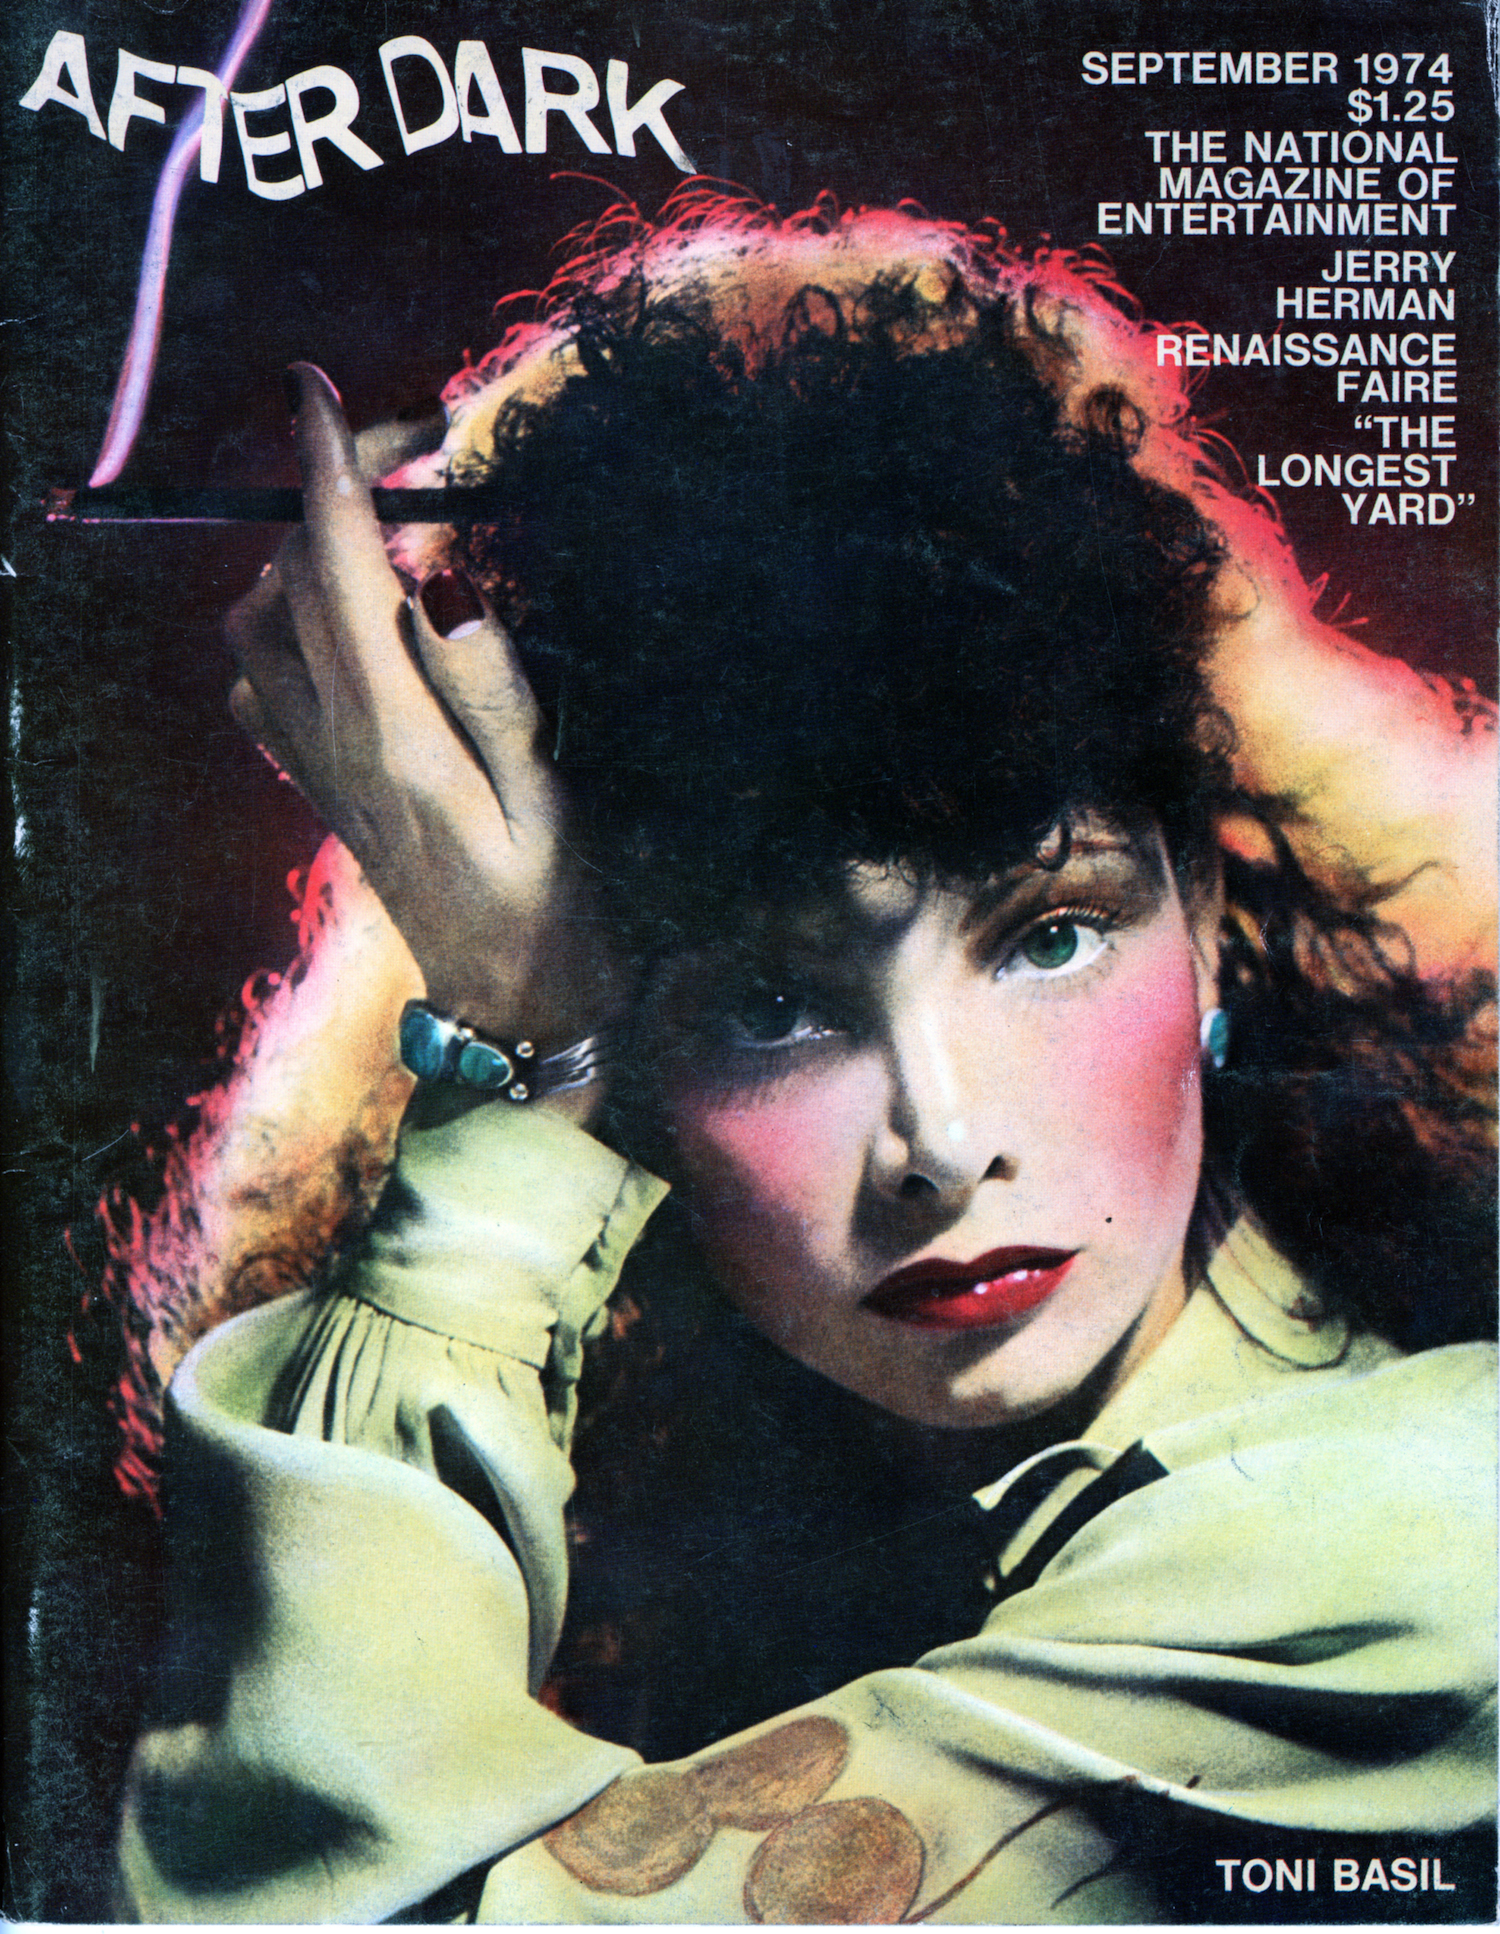 After Dark magazine September 1974